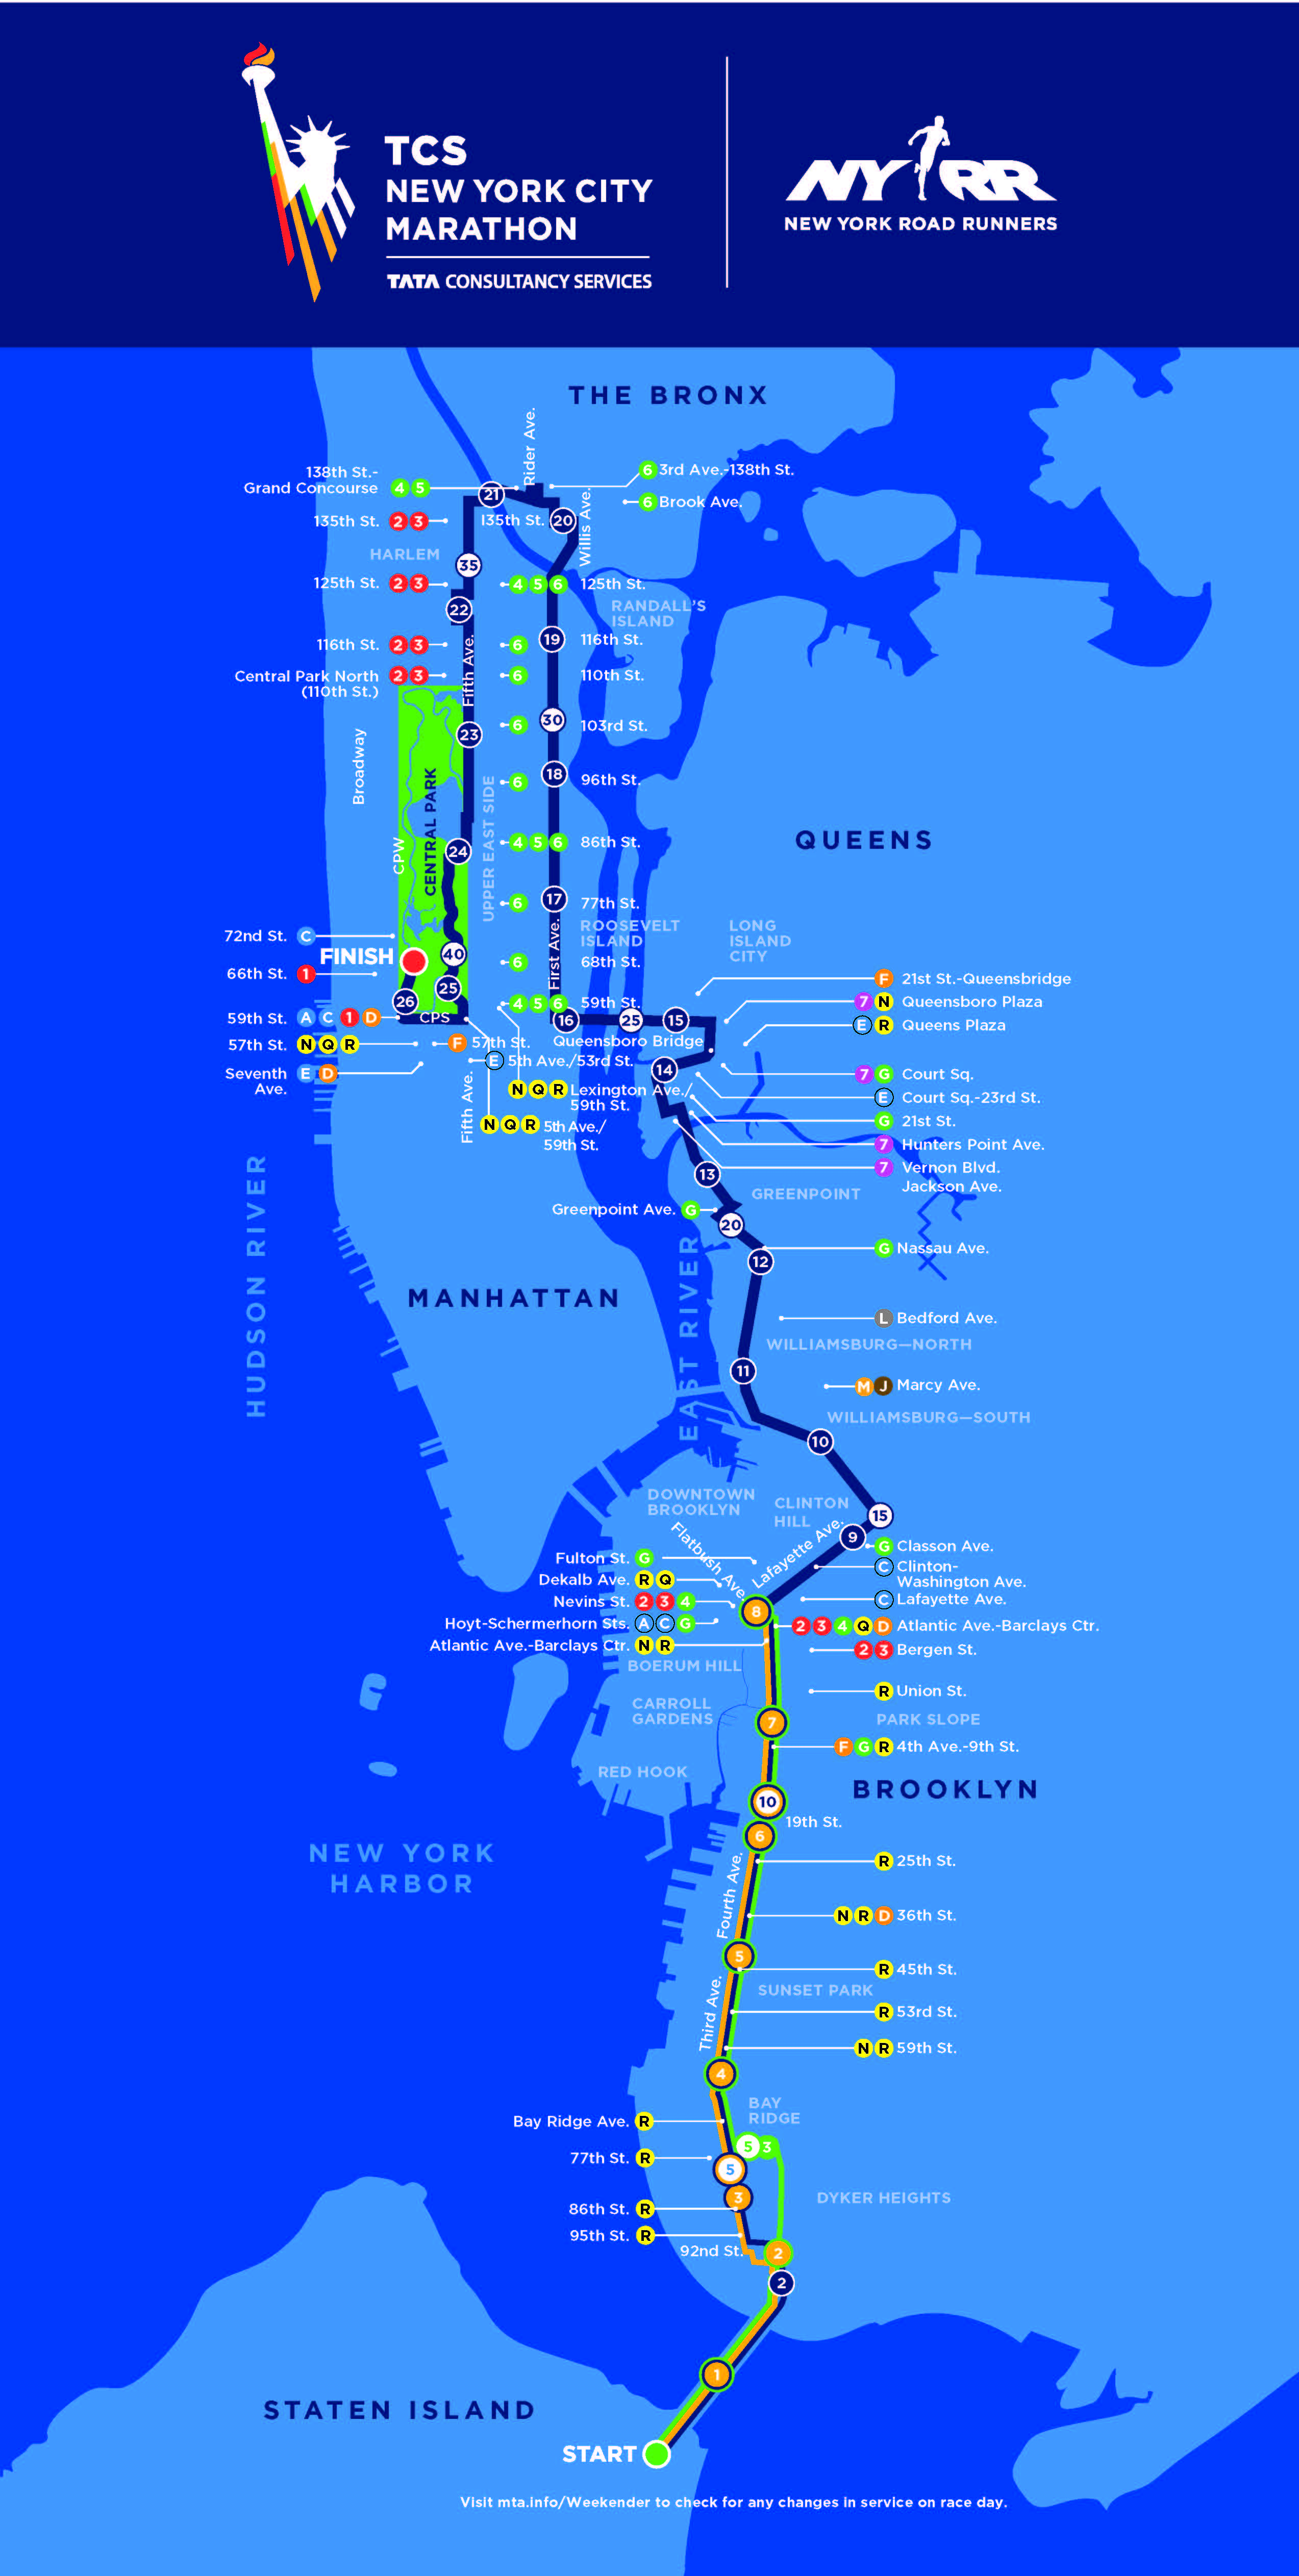 NYC Marathon 2016 Guide: Start Times, Course Route, Where ...